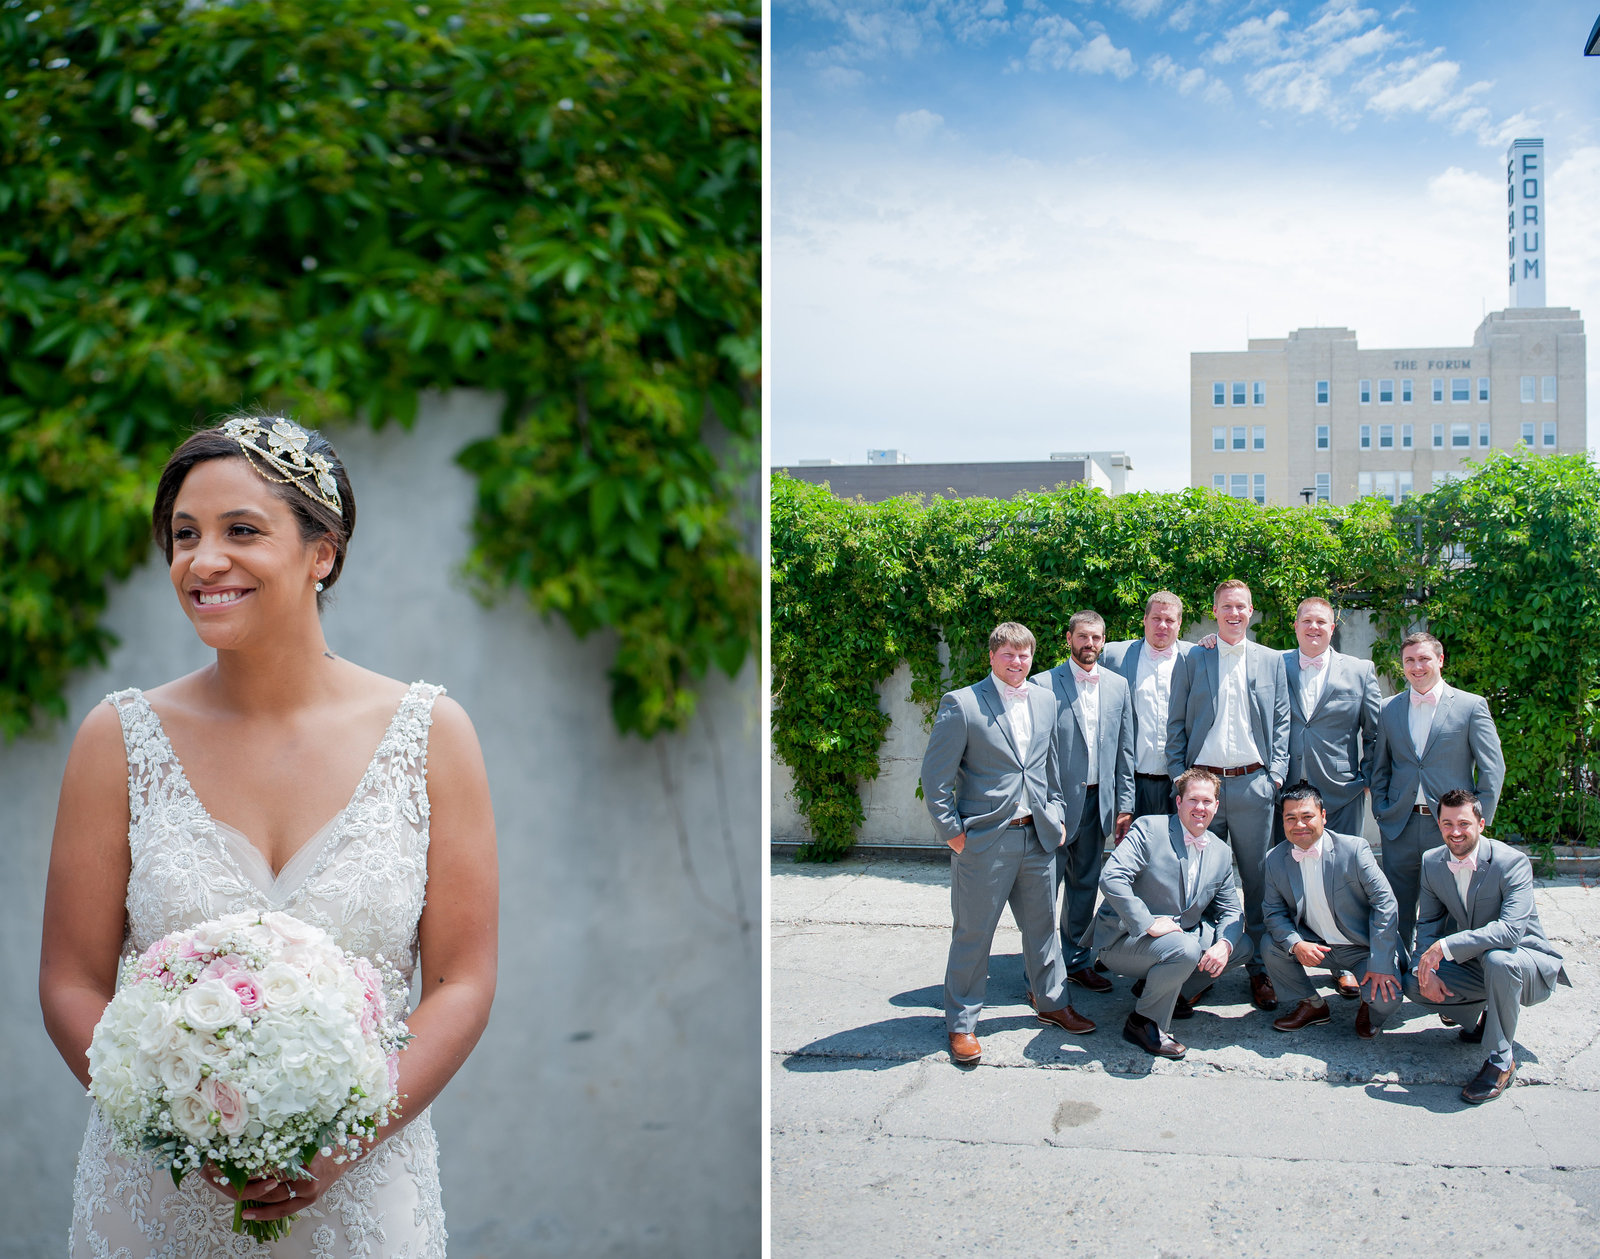 Downtown classic summer weddings photographed by Kris kandel